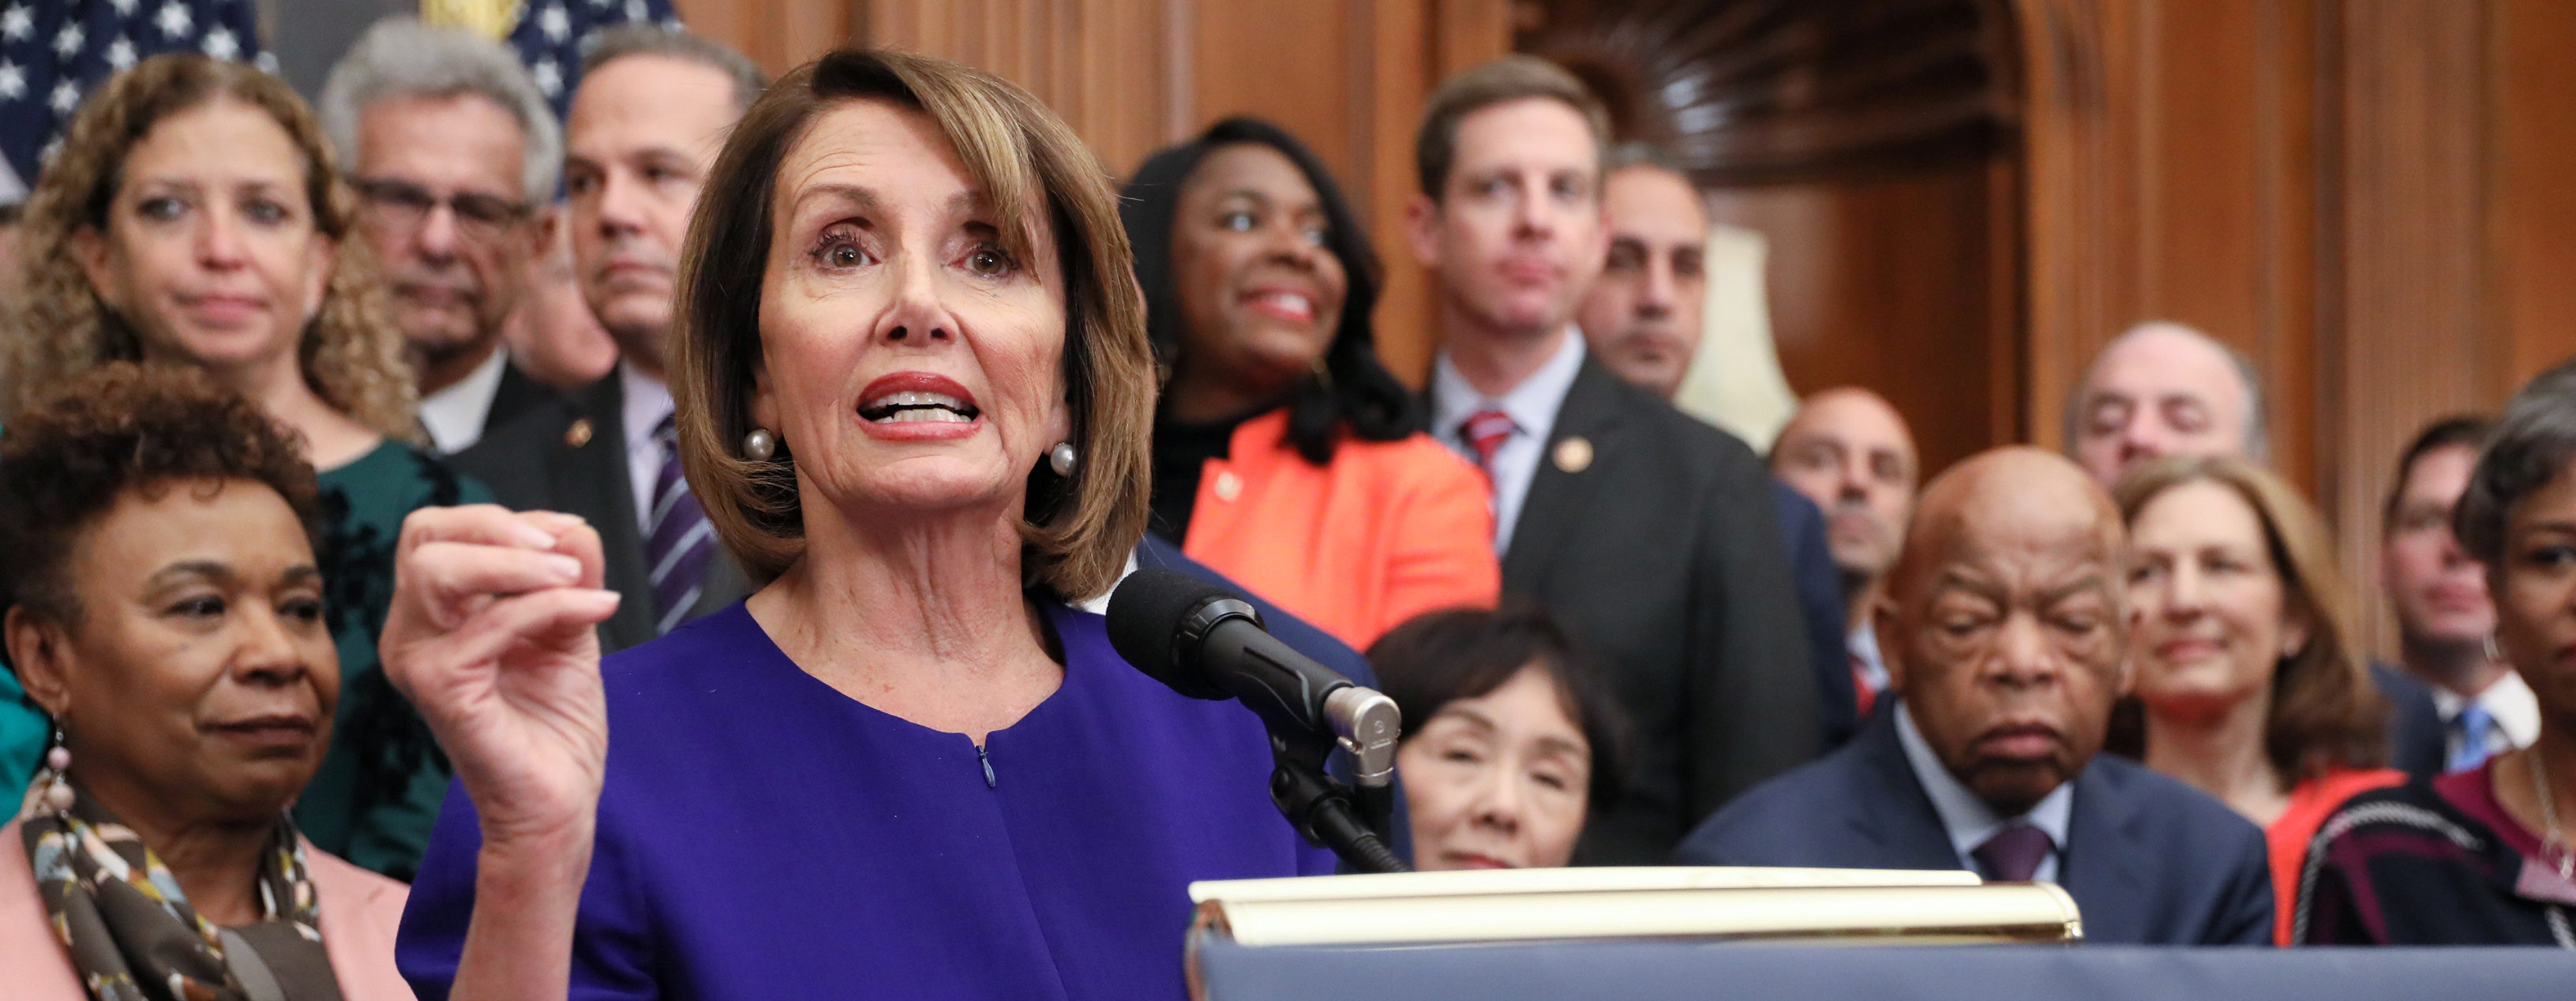 U.S. House Speaker Nancy Pelosi (D-CA) leads Democrats in introducing proposed government reform legislation, which they've titled the For the People Act, at the U.S. Capitol in Washington, U.S. January 4, 2019. REUTERS/Jonathan Ernst.